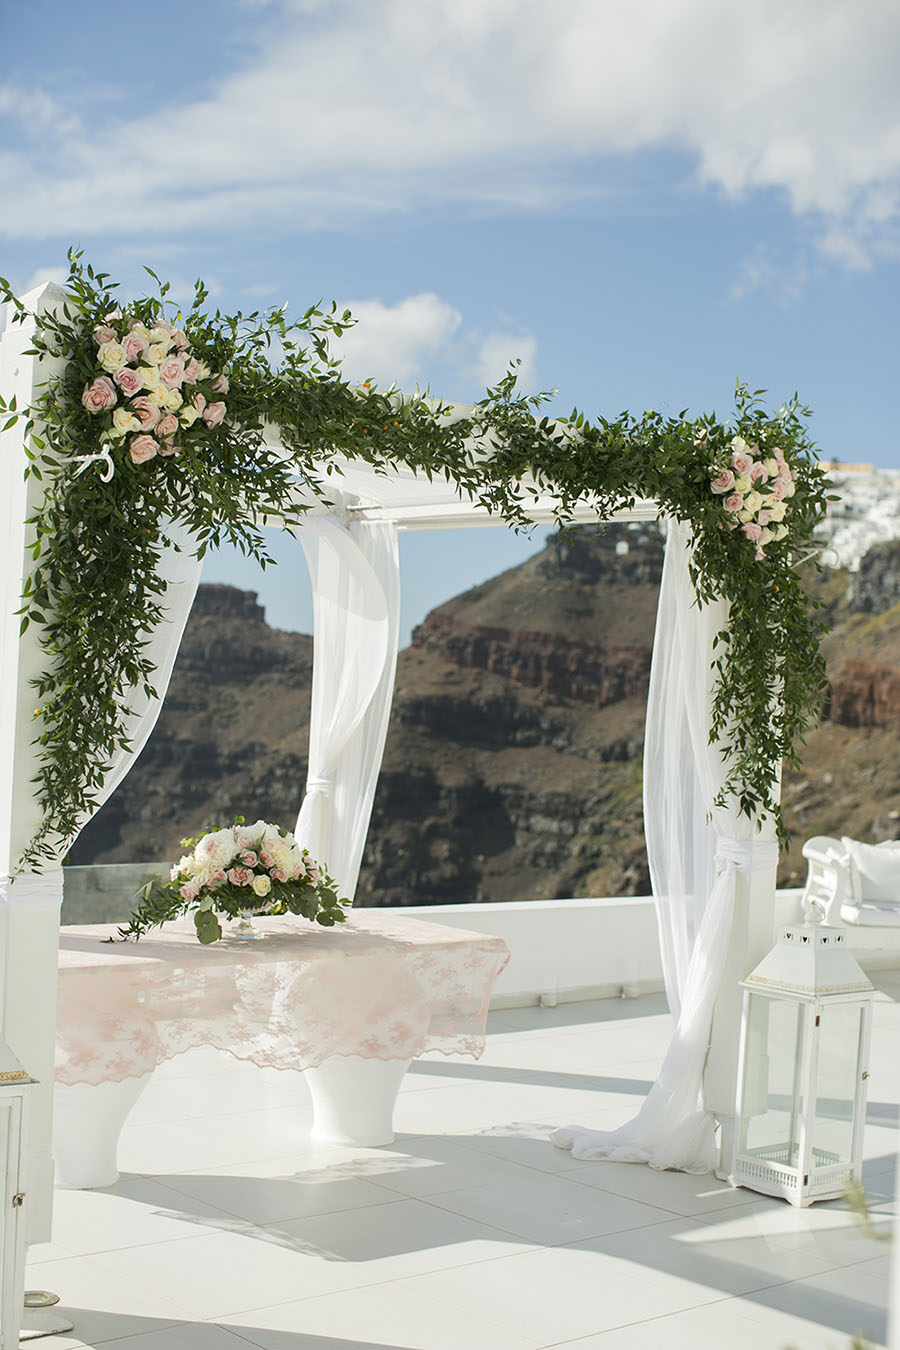 Botanical wedding in Greece-Tie the knot